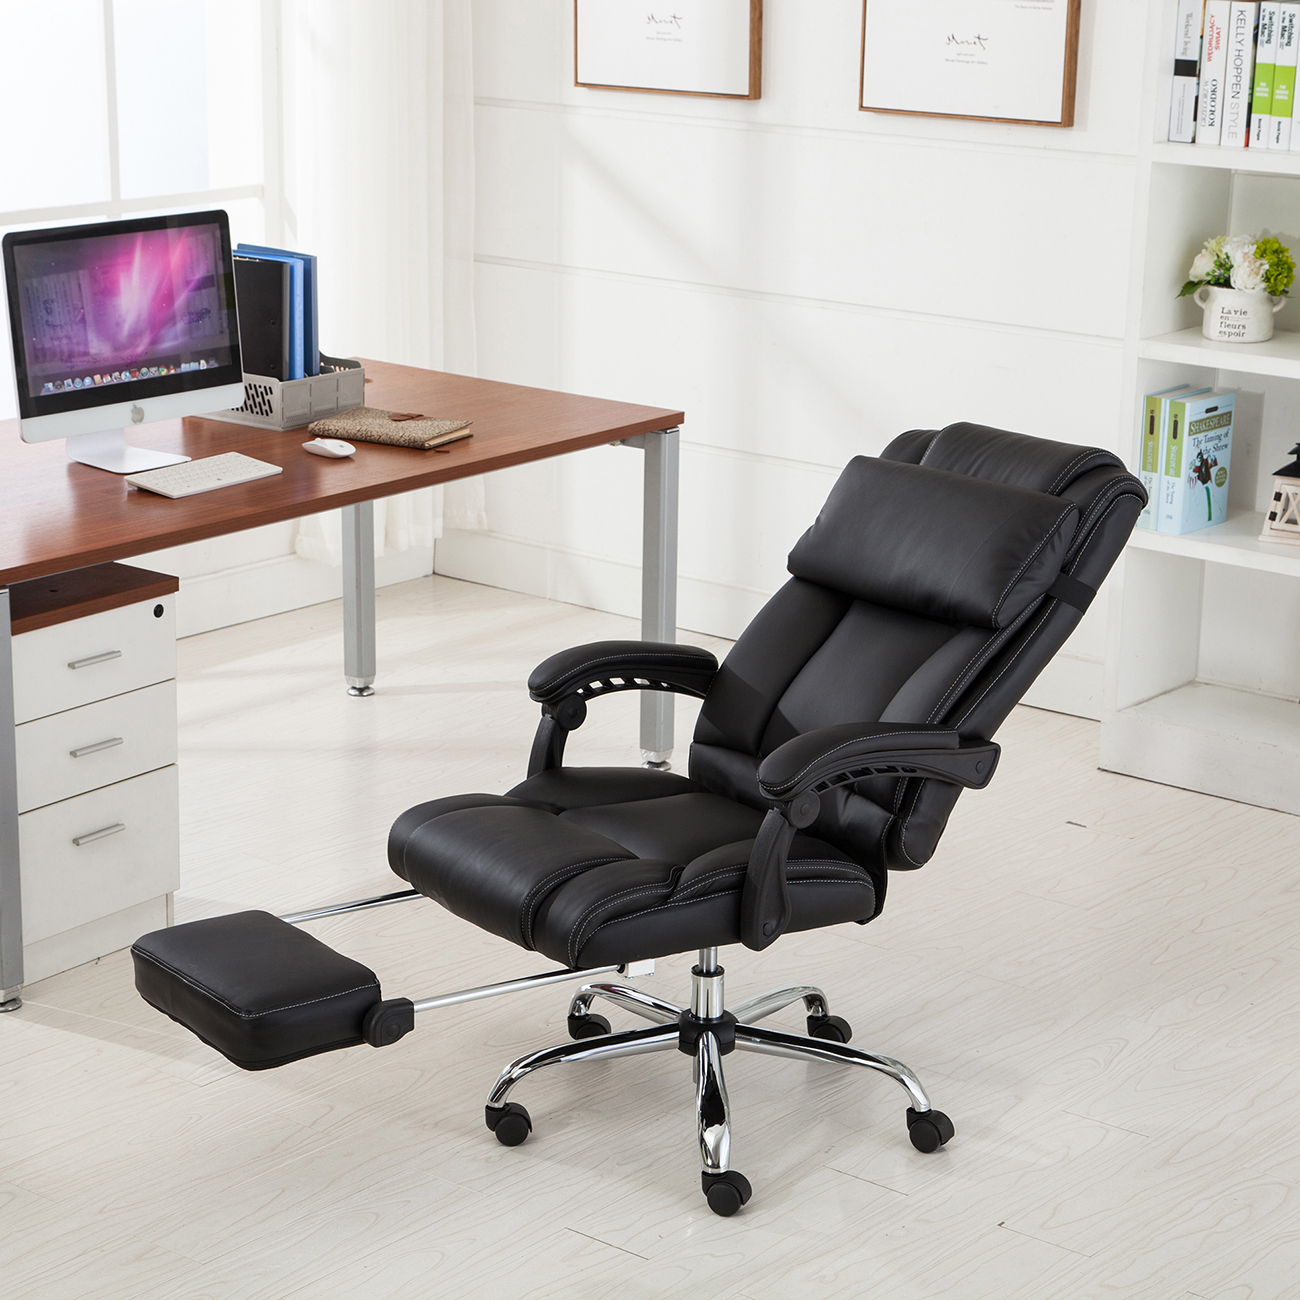 Executive Office Chair Ergonomic Armchair Reclining High Back Leather  Footrest